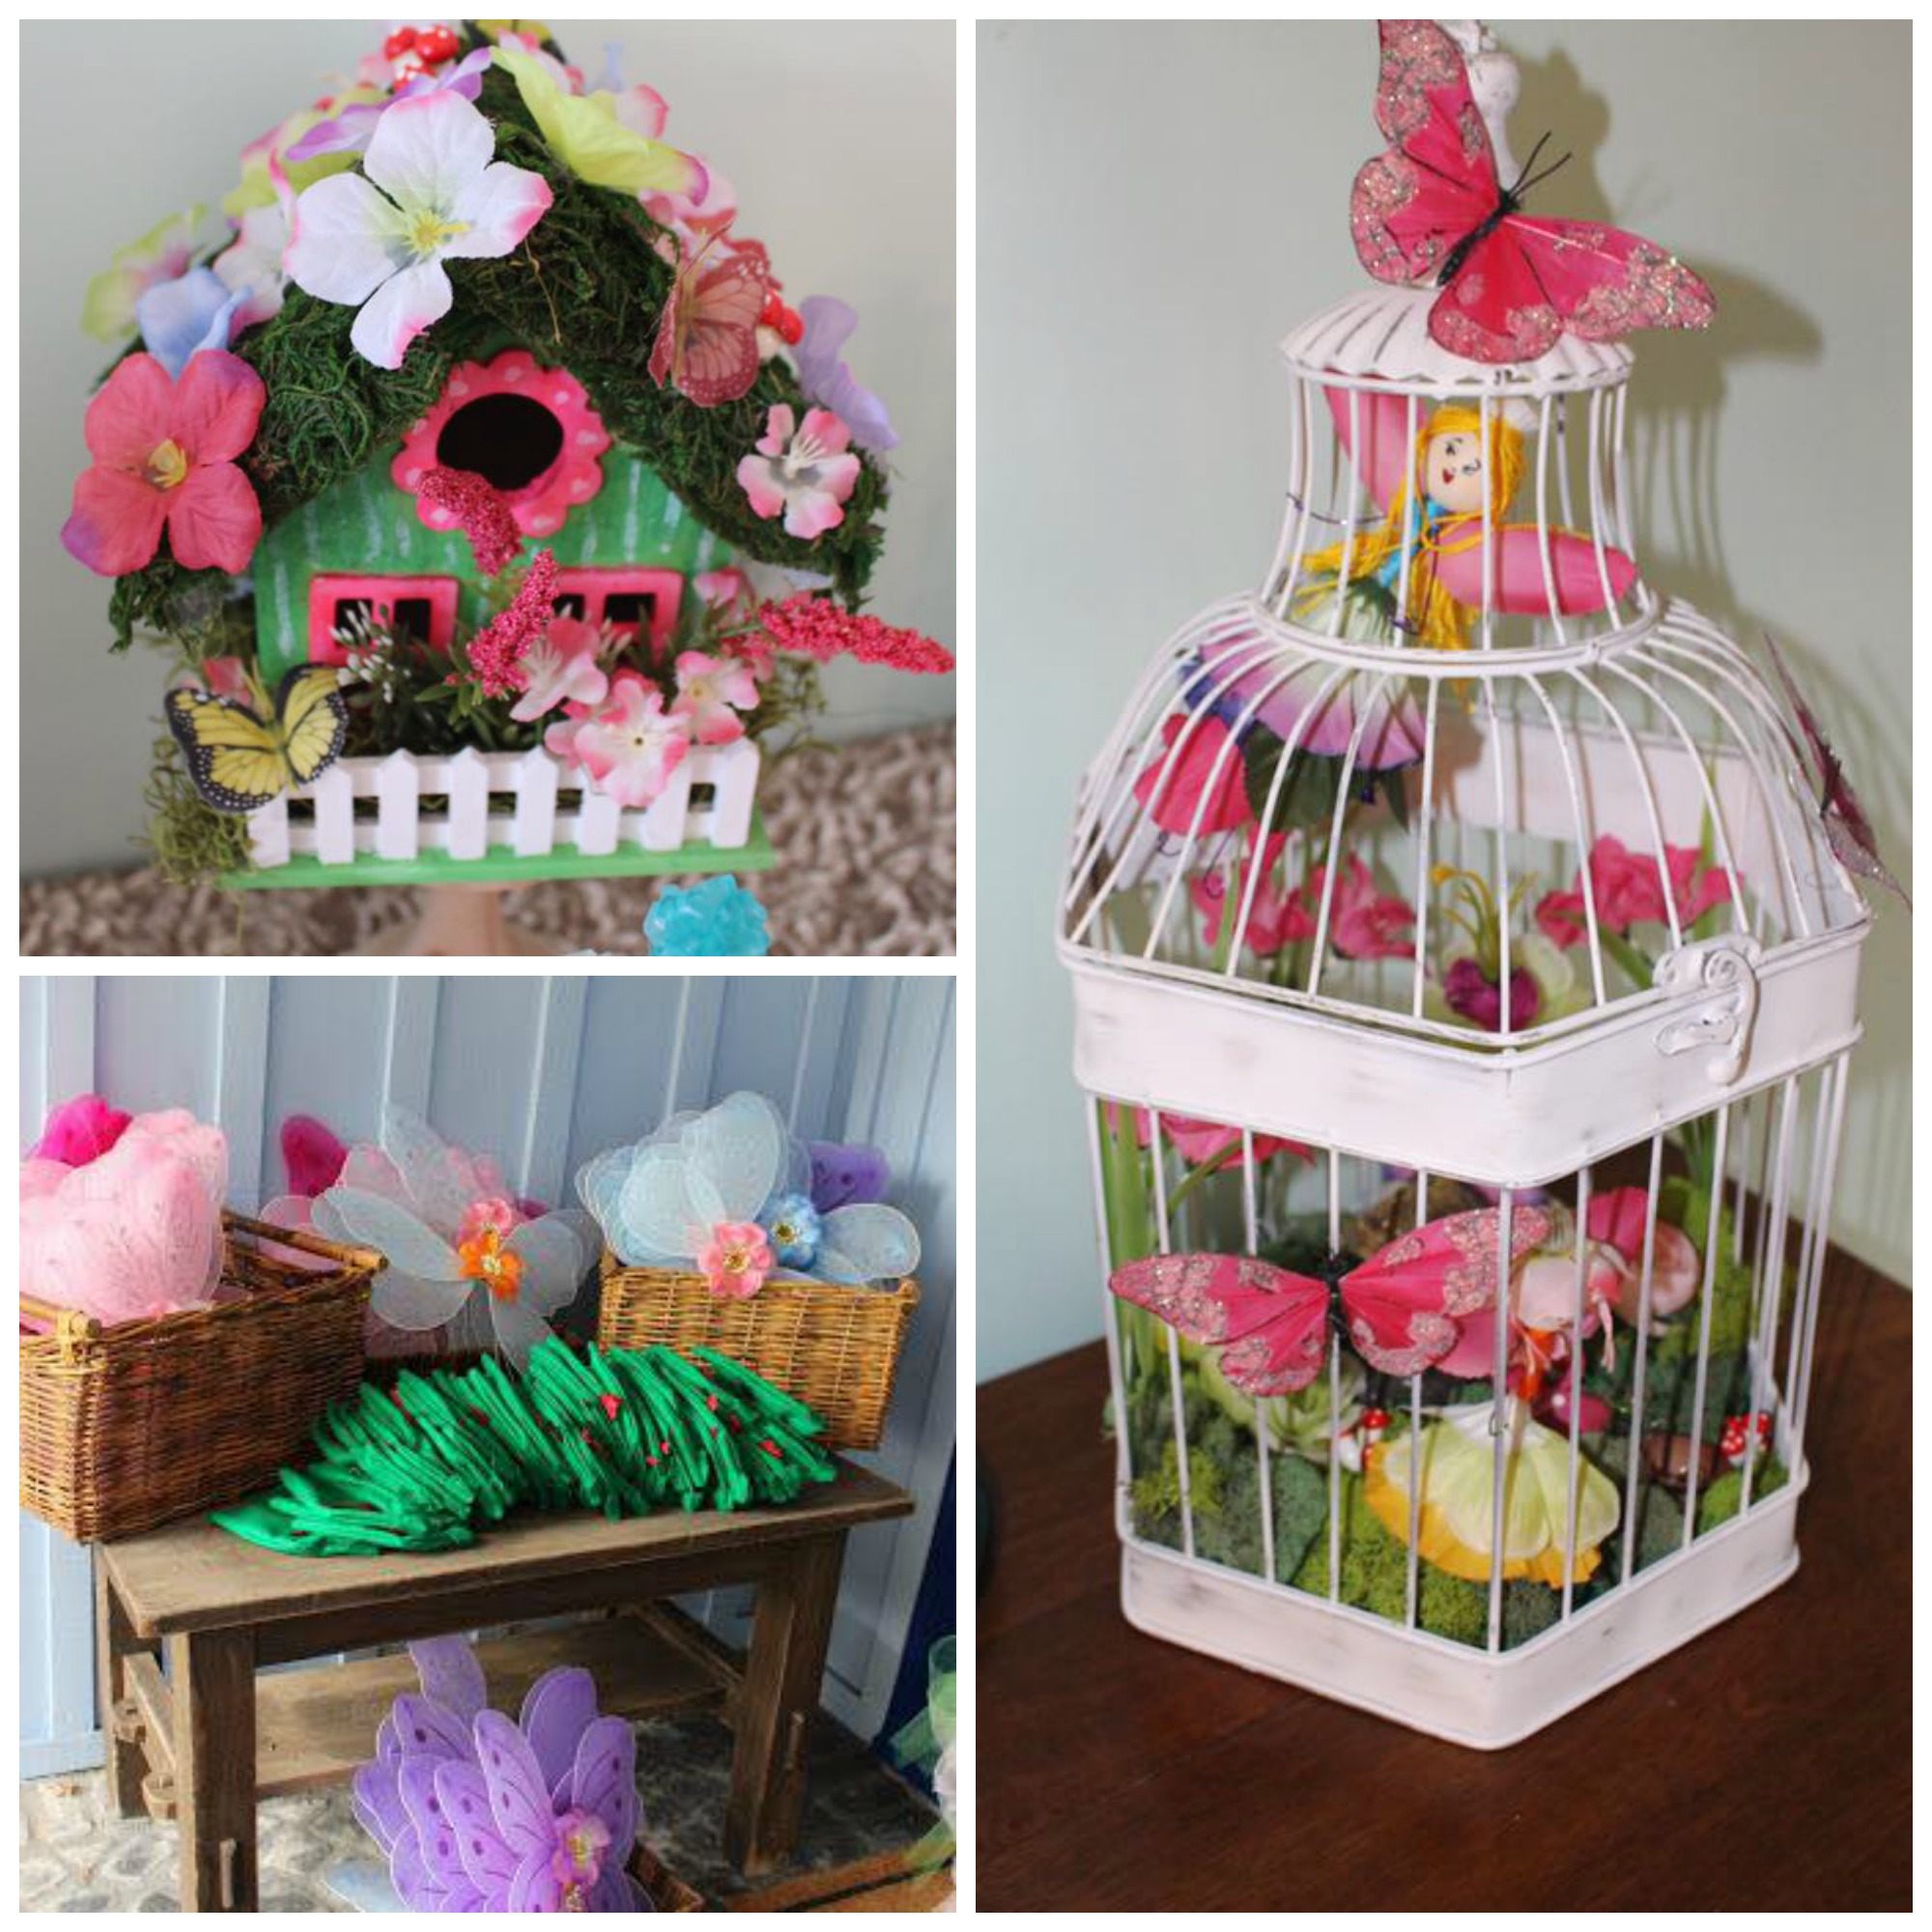 Merveilleux I Love A Good Party And These DIY Fairy Party Ideas Are Amazing! I Can